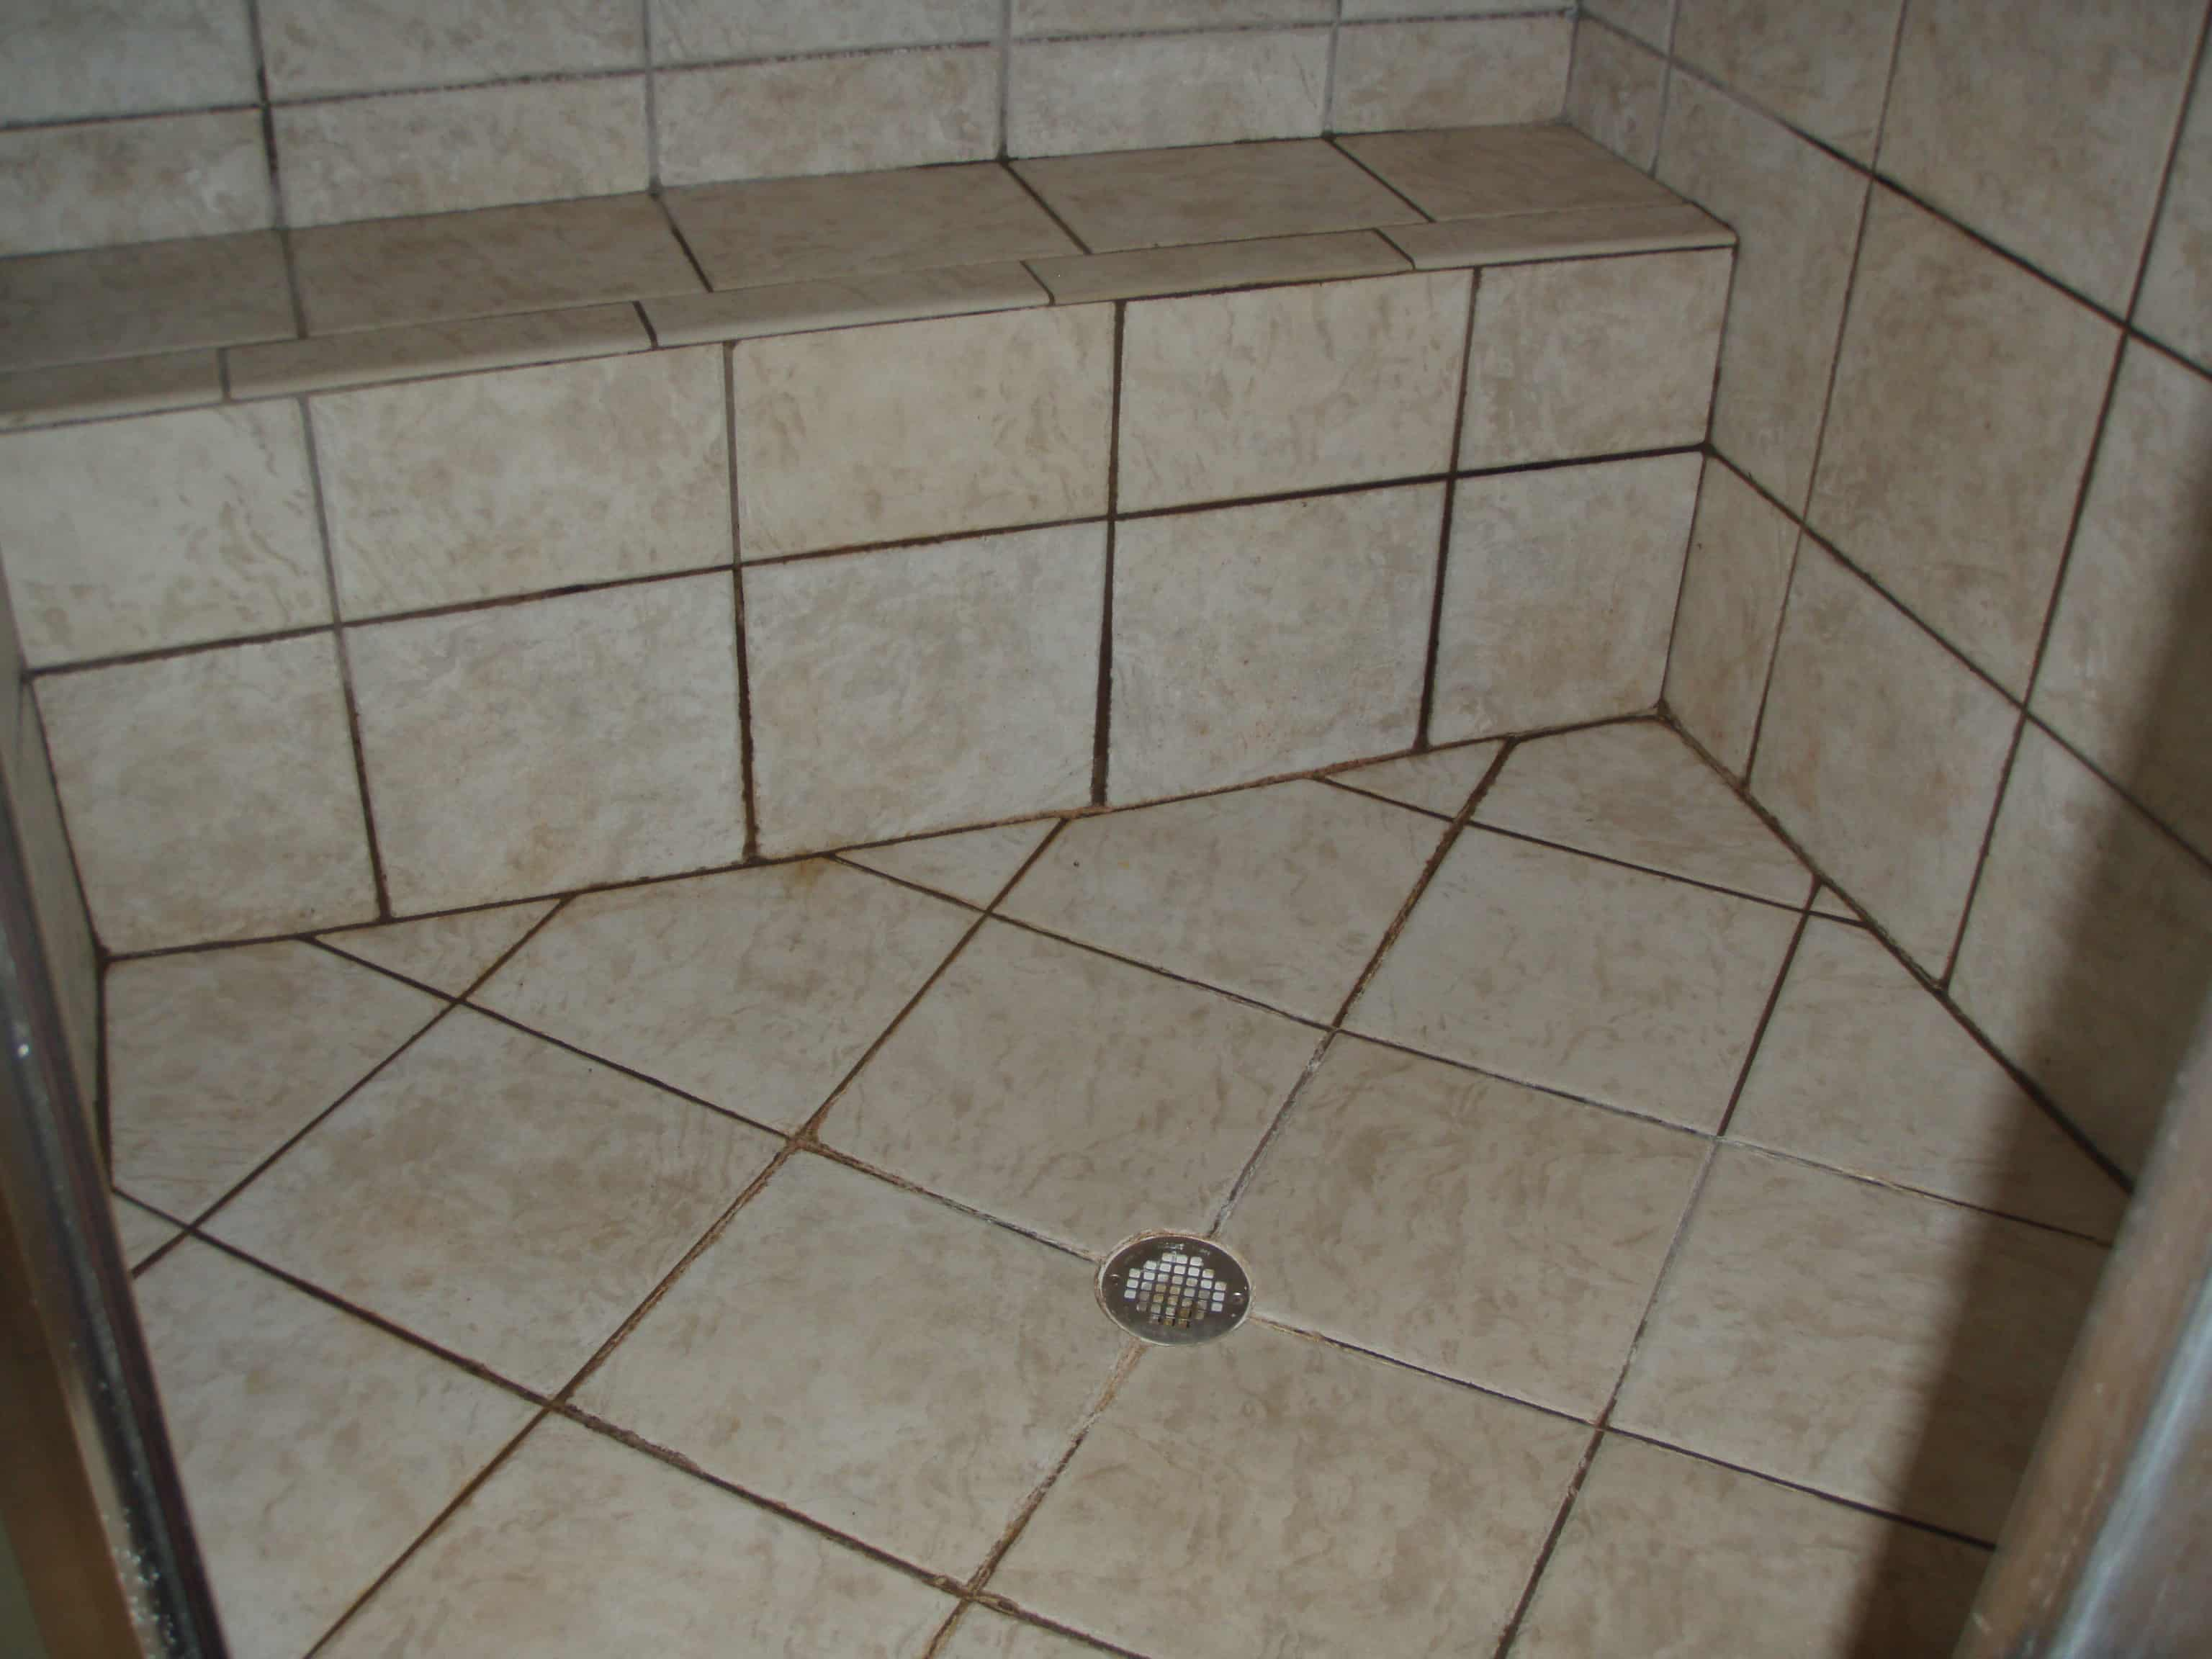 Tile and grout cleaning cape cod dryserv before dailygadgetfo Image collections